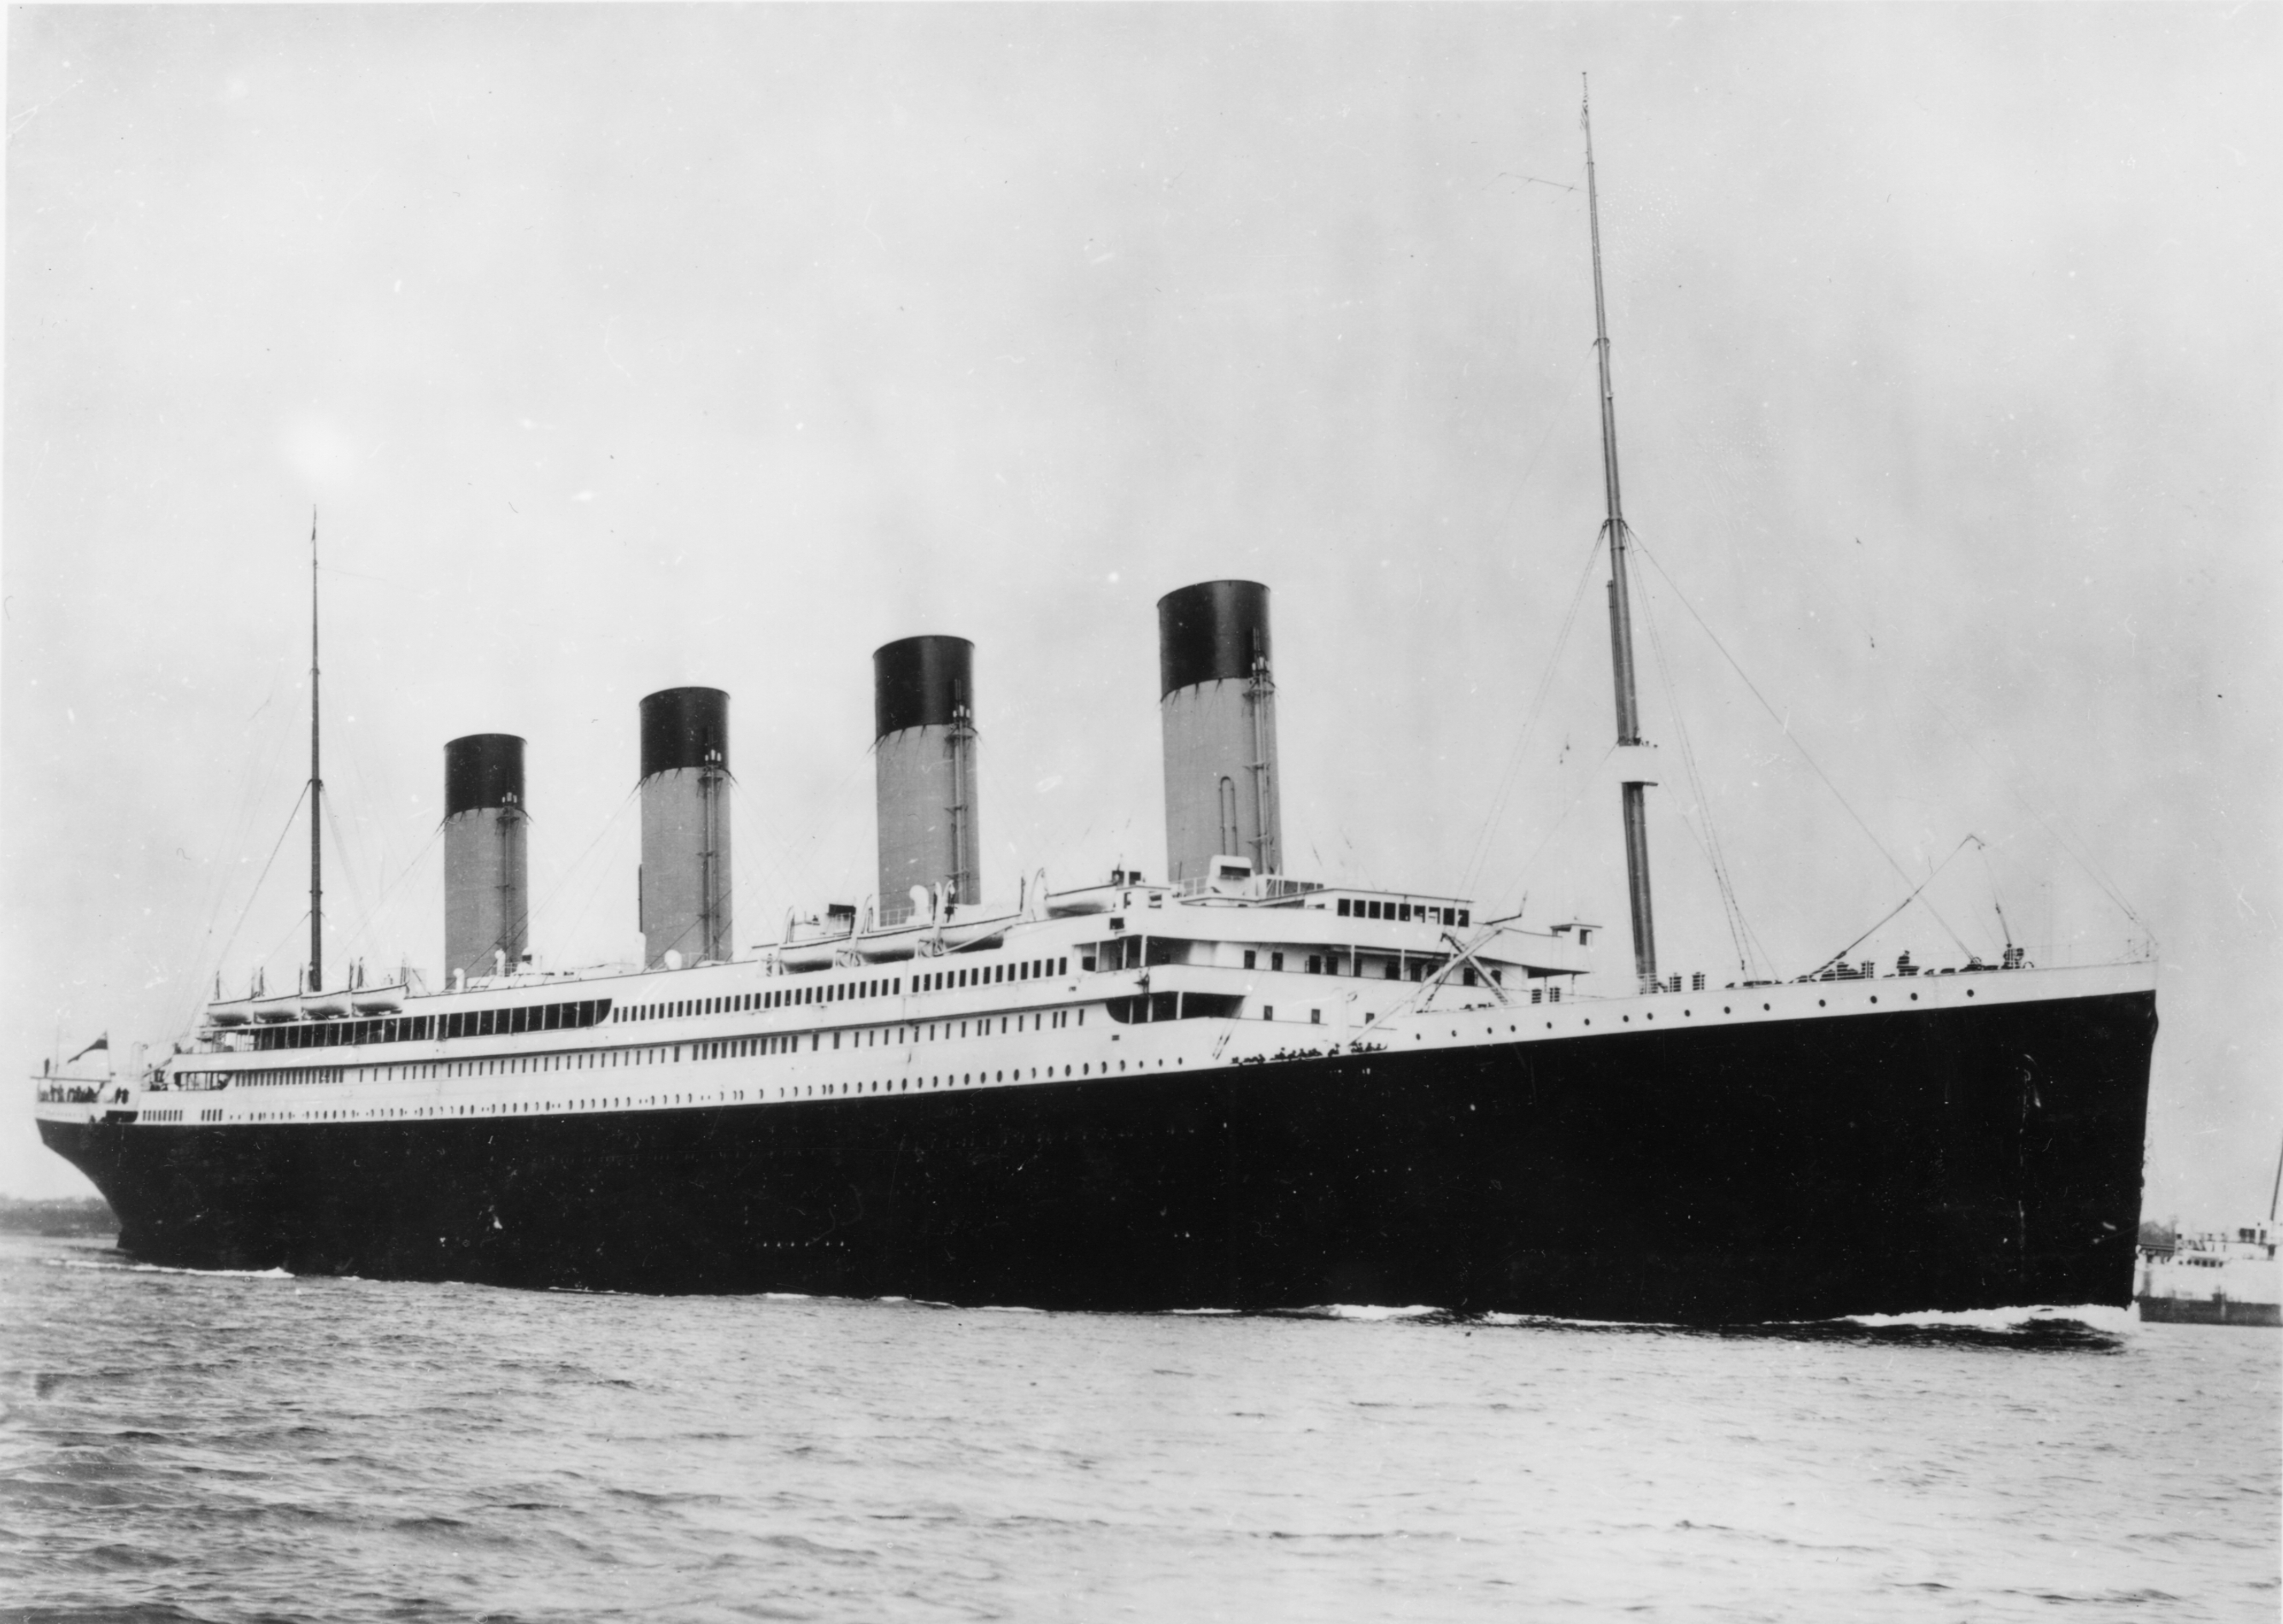 Photograph of the Titanic leaving the port Southampton